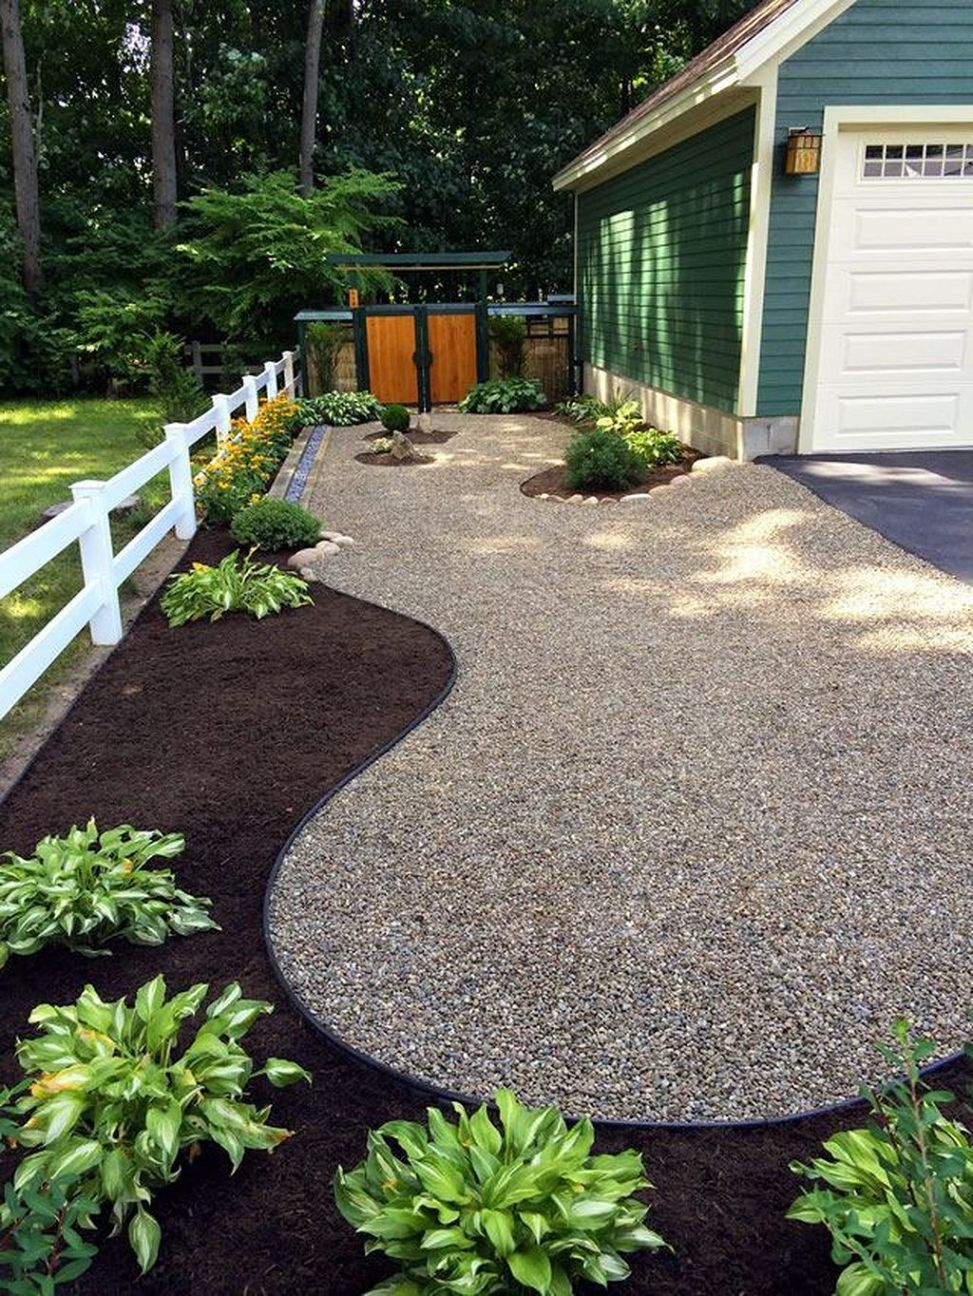 awesome rock landscaping ideas backyard that work | front